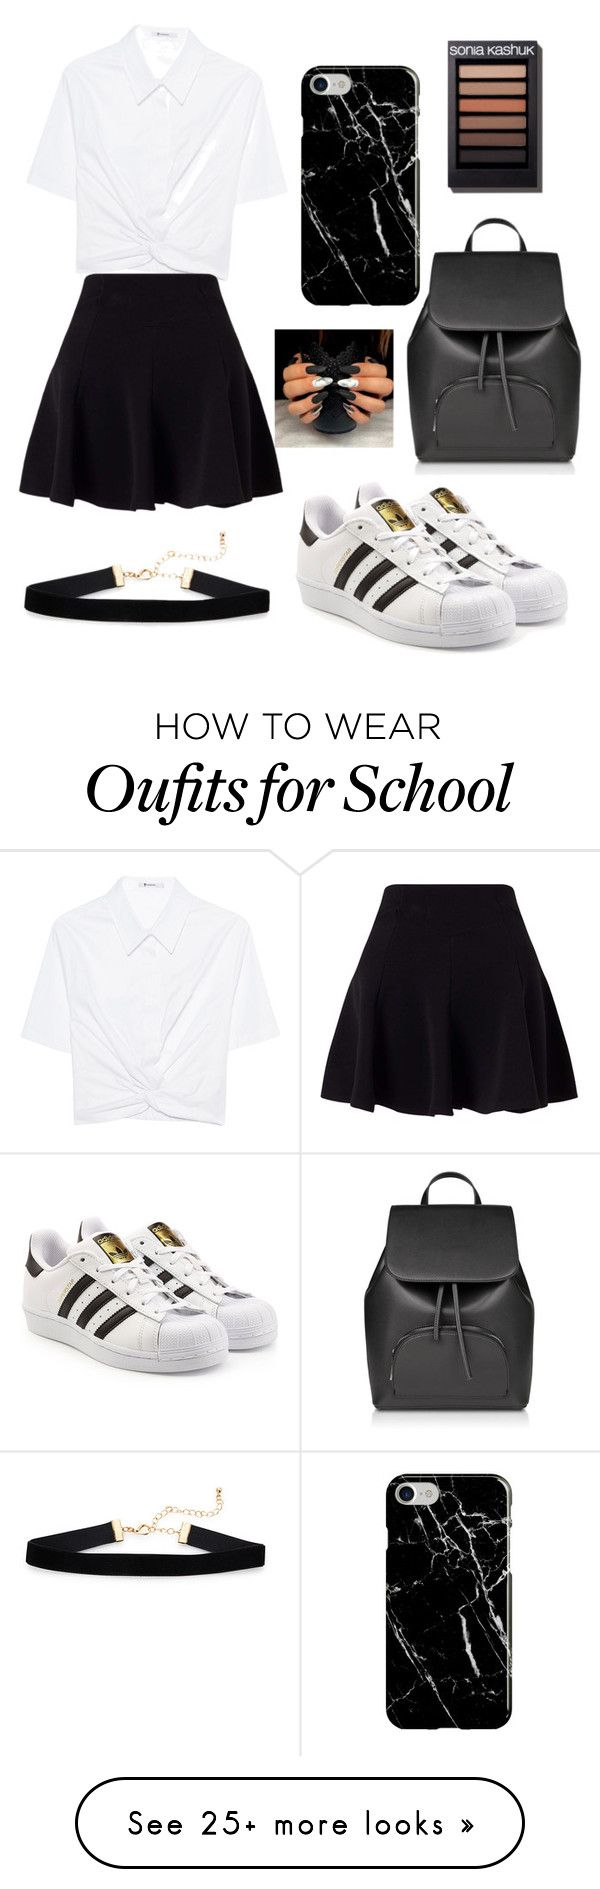 """Black And White School Outfit"" by fashiongirllover18 on Polyvore featuring T By Alexander Wang, Miss Selfridge, adidas Originals and Recover"